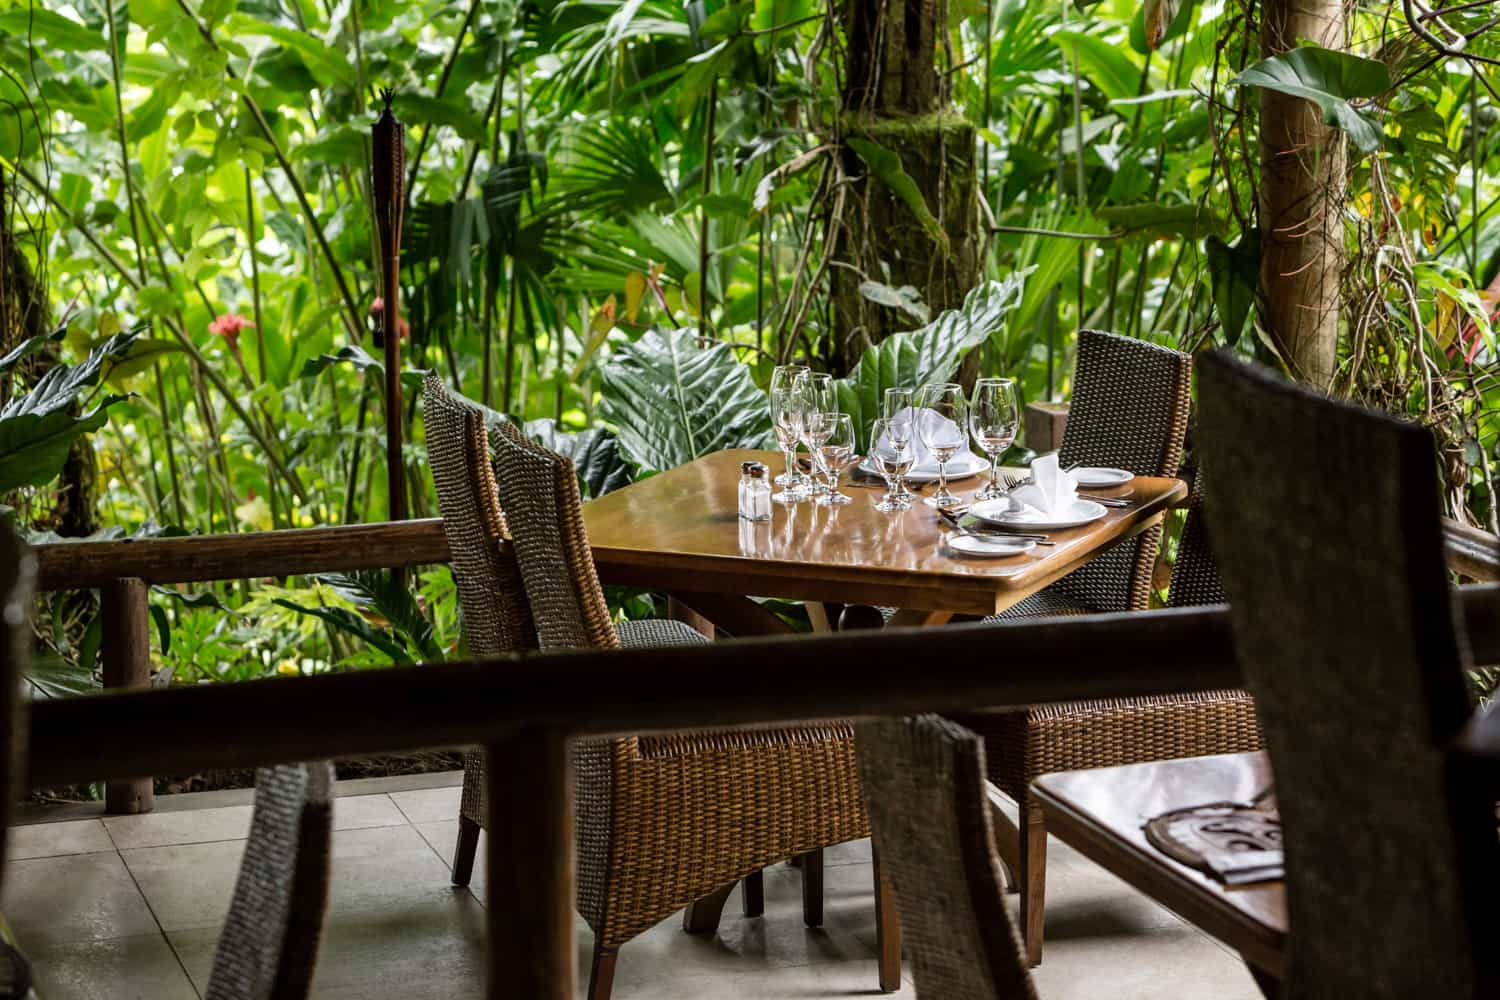 Bride and groom dinner table in La Fortuna restaurant surrounded by rainforest.